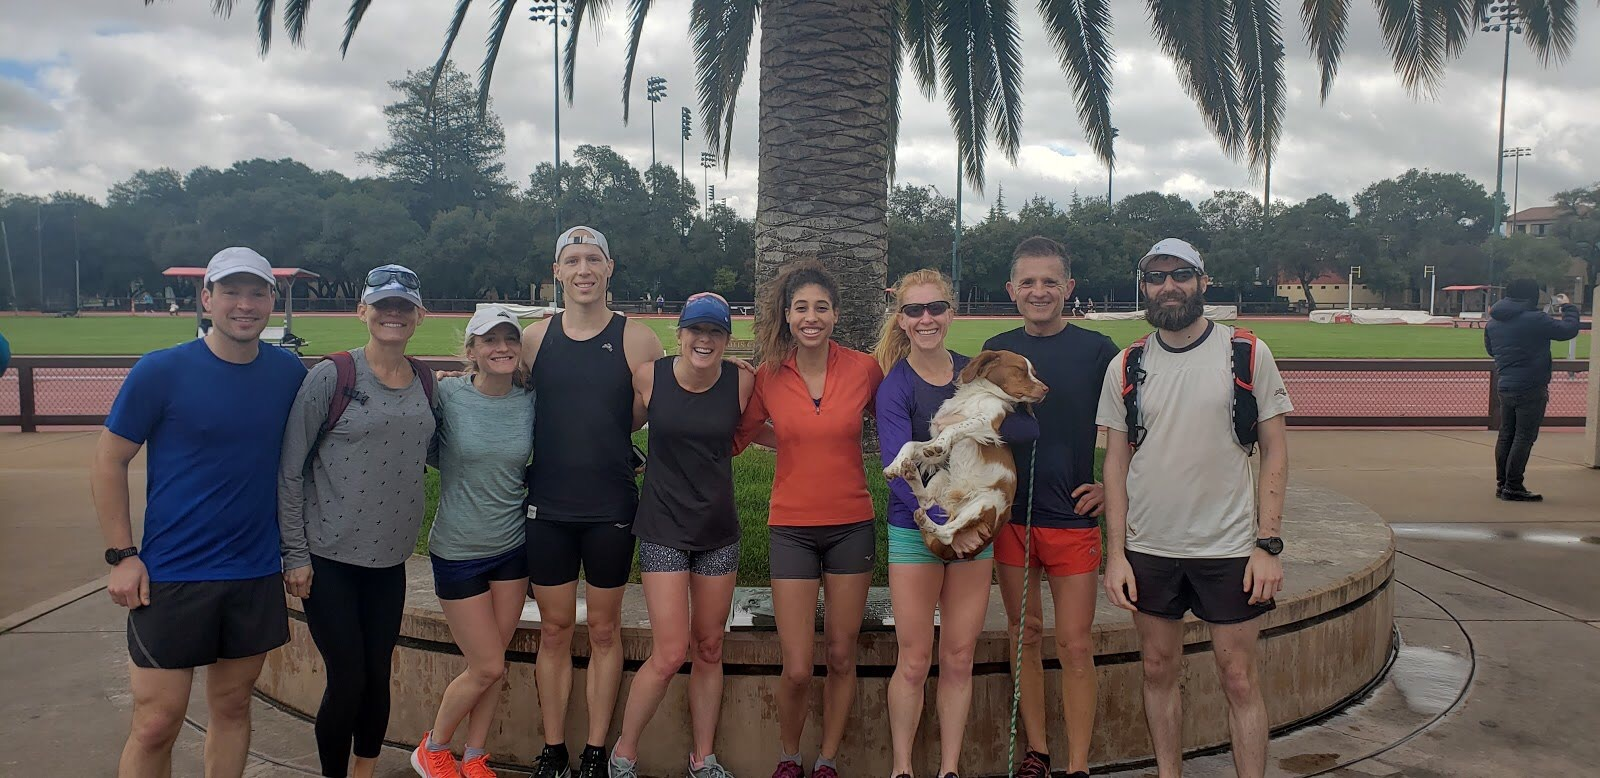 The whole crew at Stanford, where we finished! With a guest appearance from Endy!